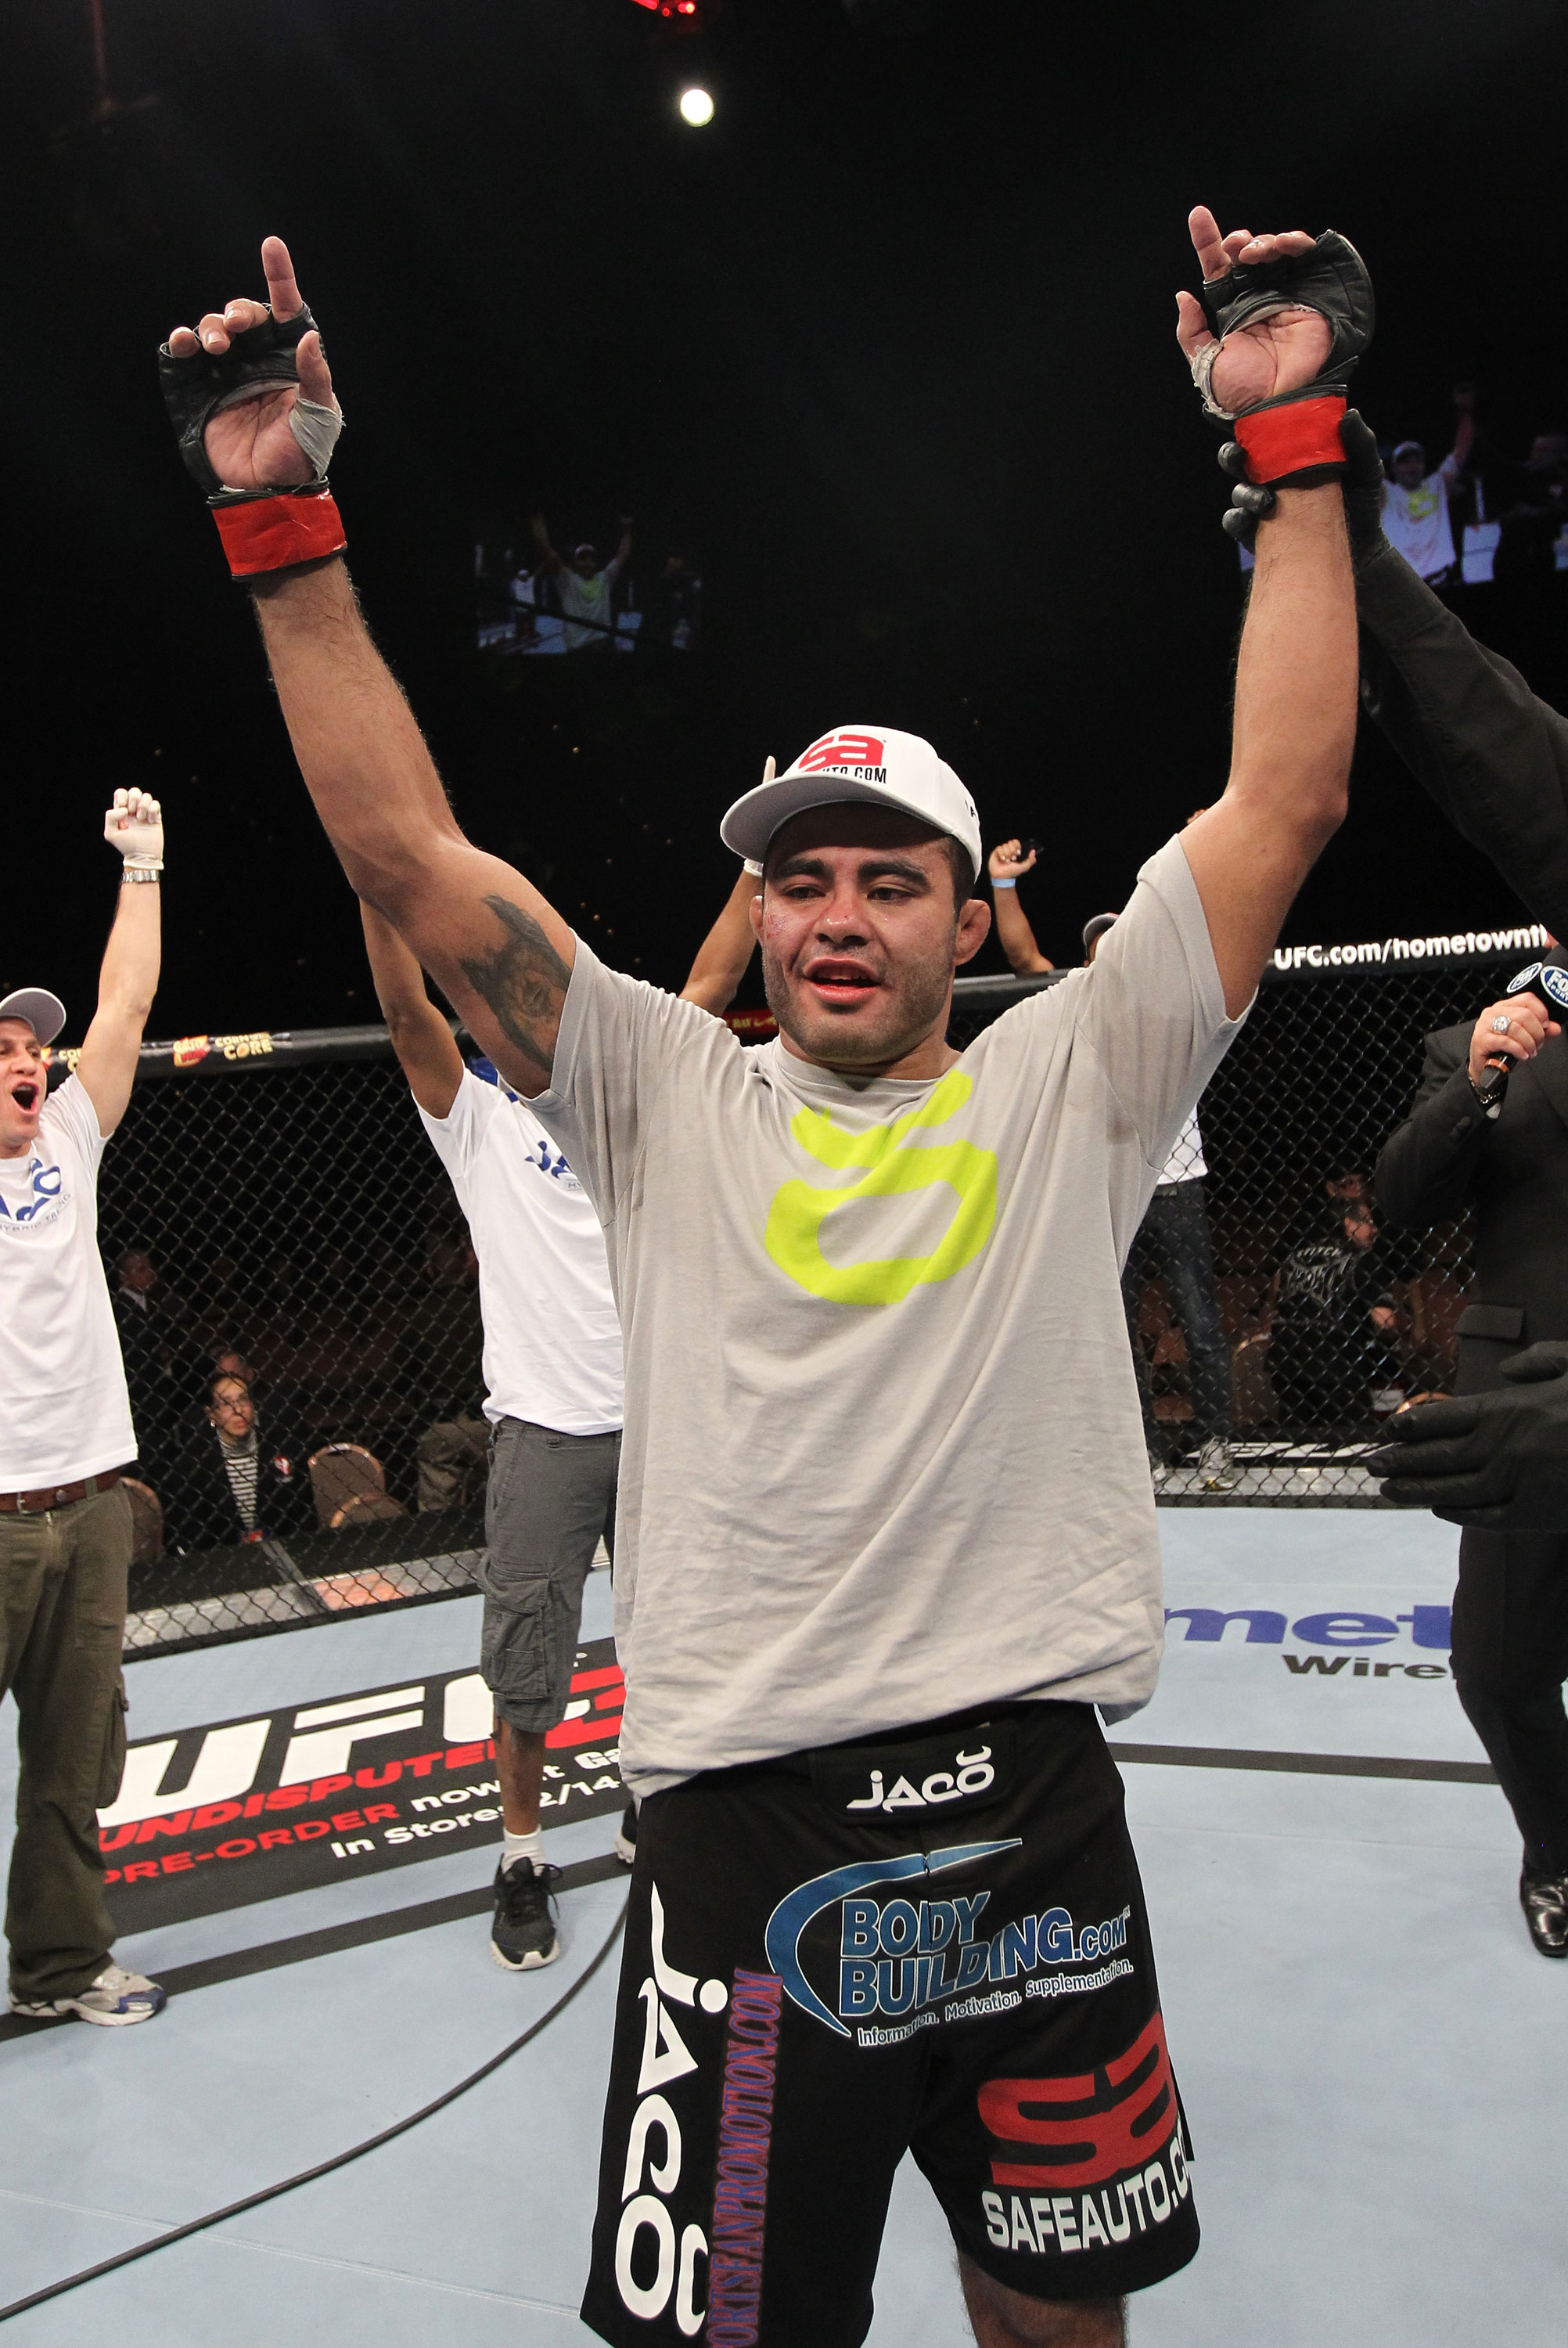 LAS VEGAS, NV - FEBRUARY 04:  Rafael Natal is declared the winner in his fight against Michael Kuiper during the UFC 143 event at Mandalay Bay Events Center on February 4, 2012 in Las Vegas, Nevada.  (Photo by Nick Laham/Zuffa LLC/Zuffa LLC via Getty Images) *** Local Caption *** Rafael Natal